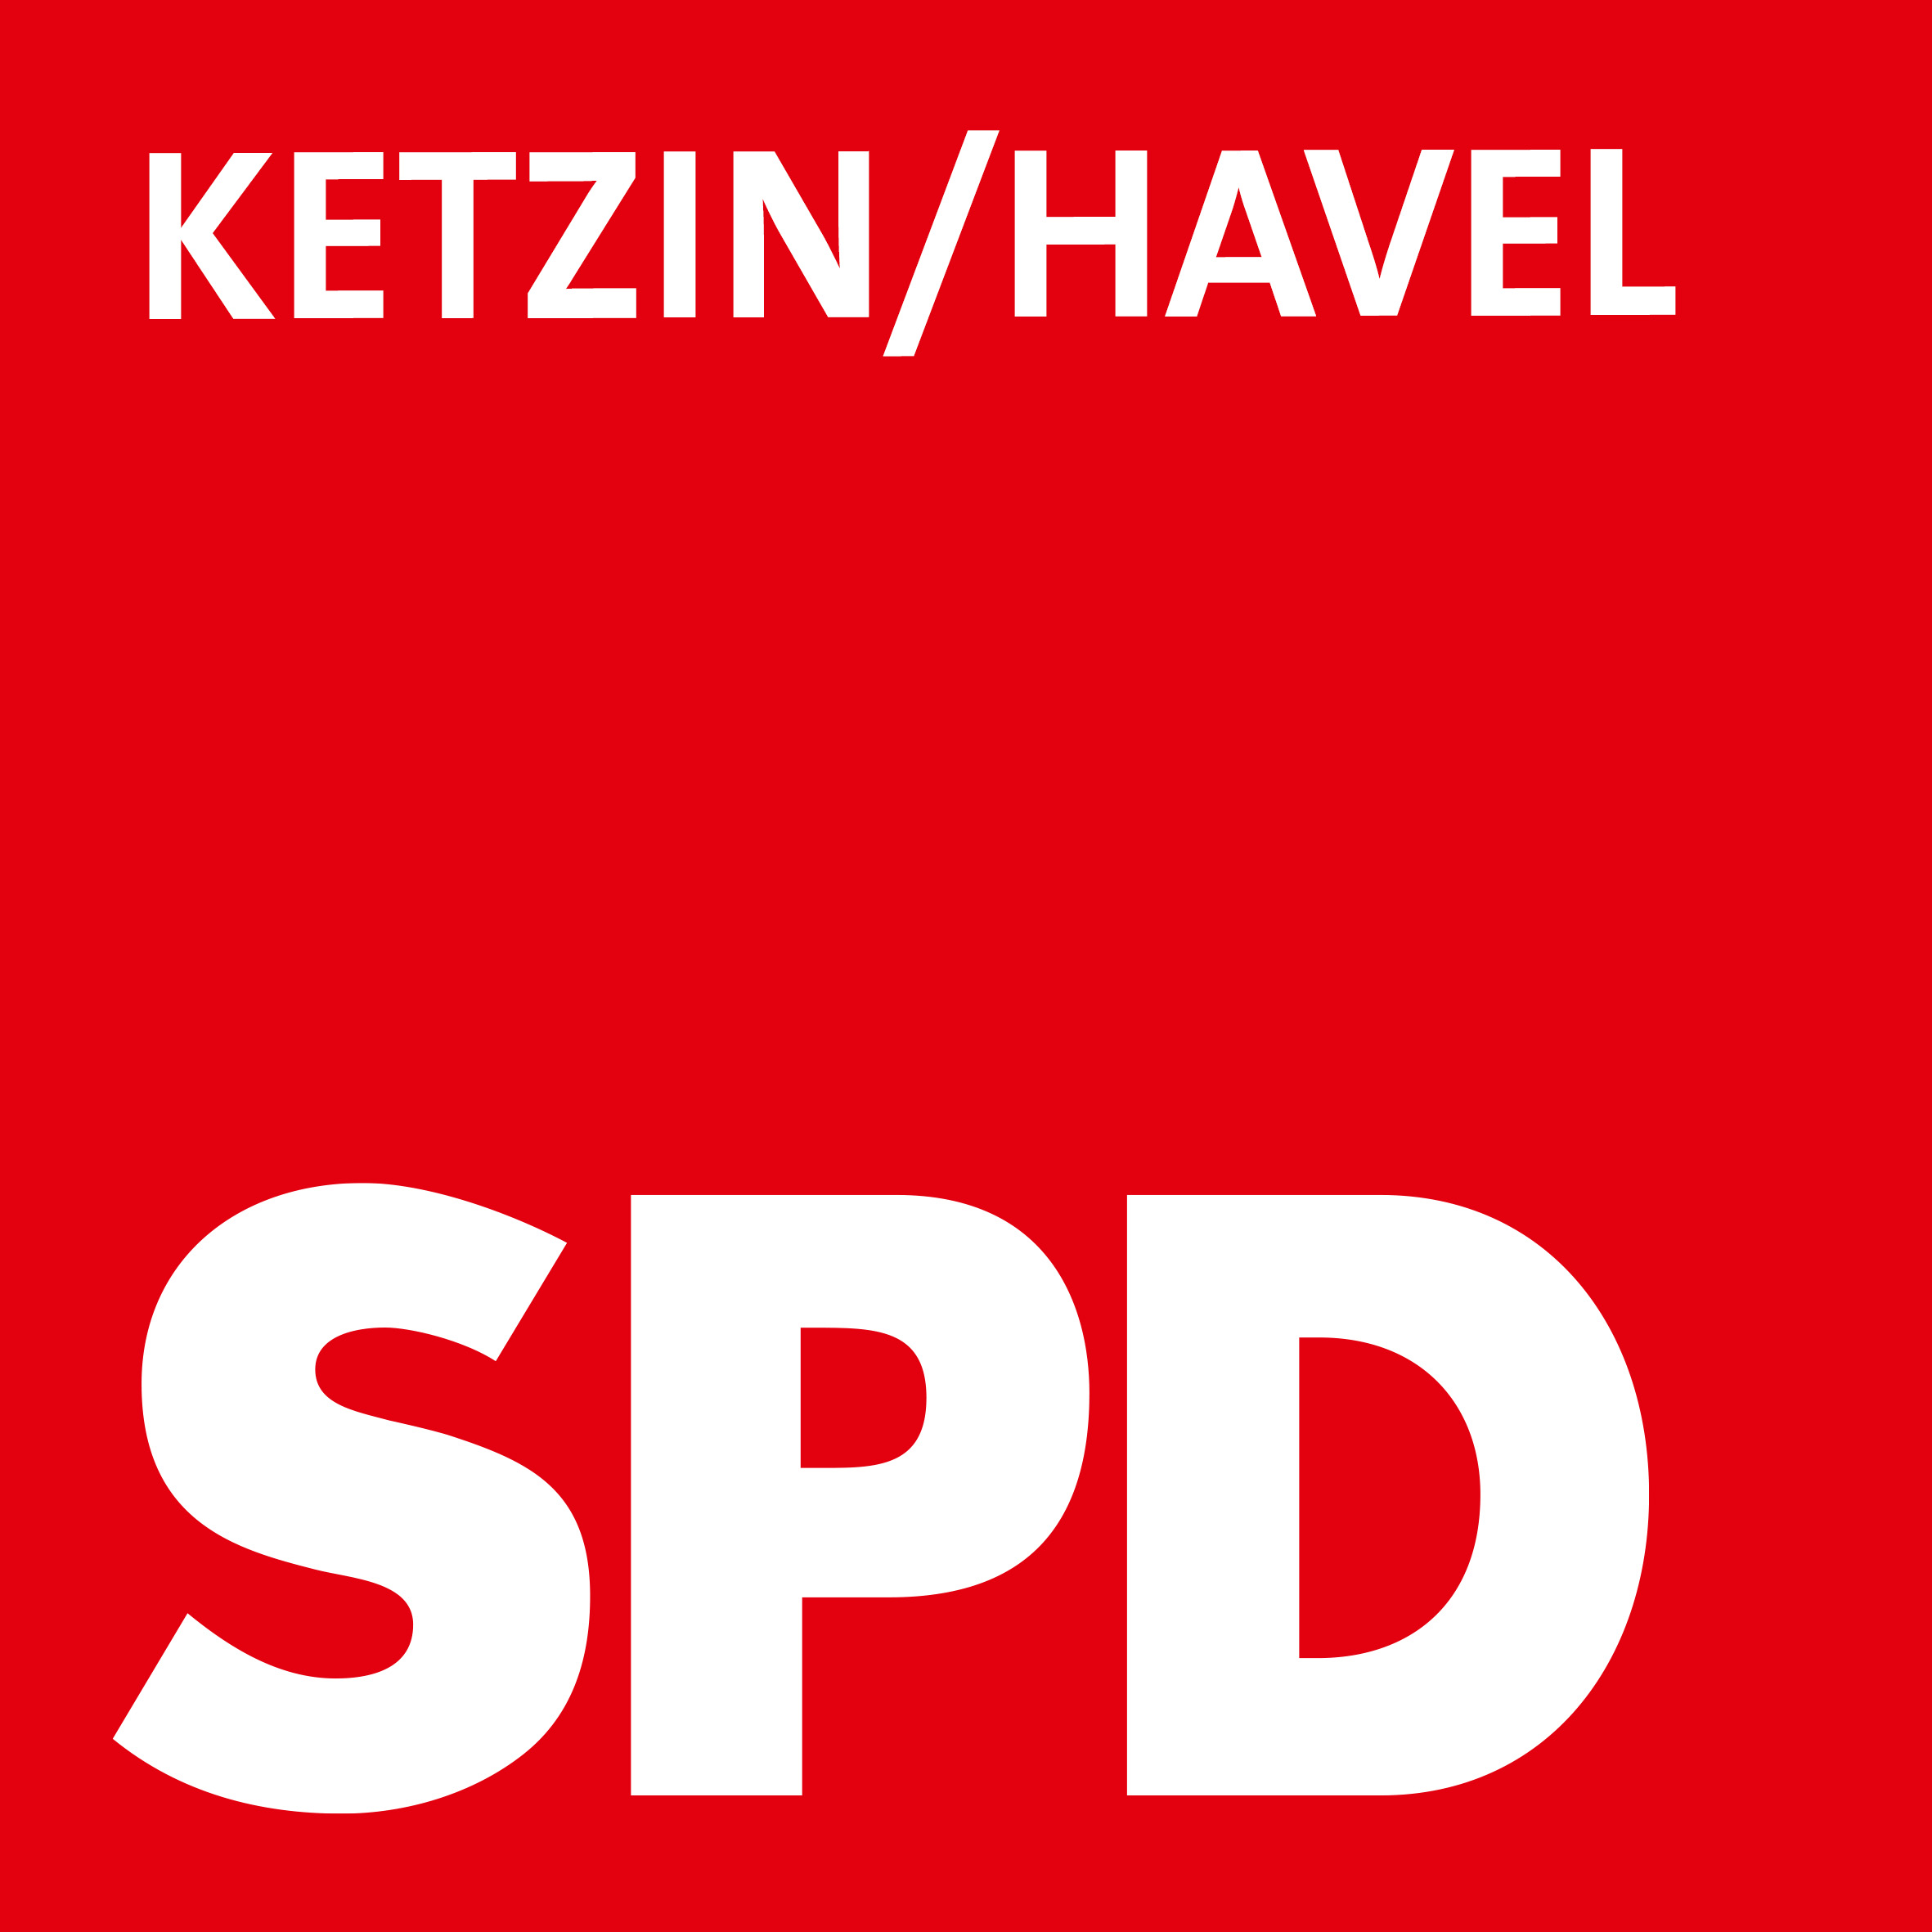 SPD Ketzin/Havel